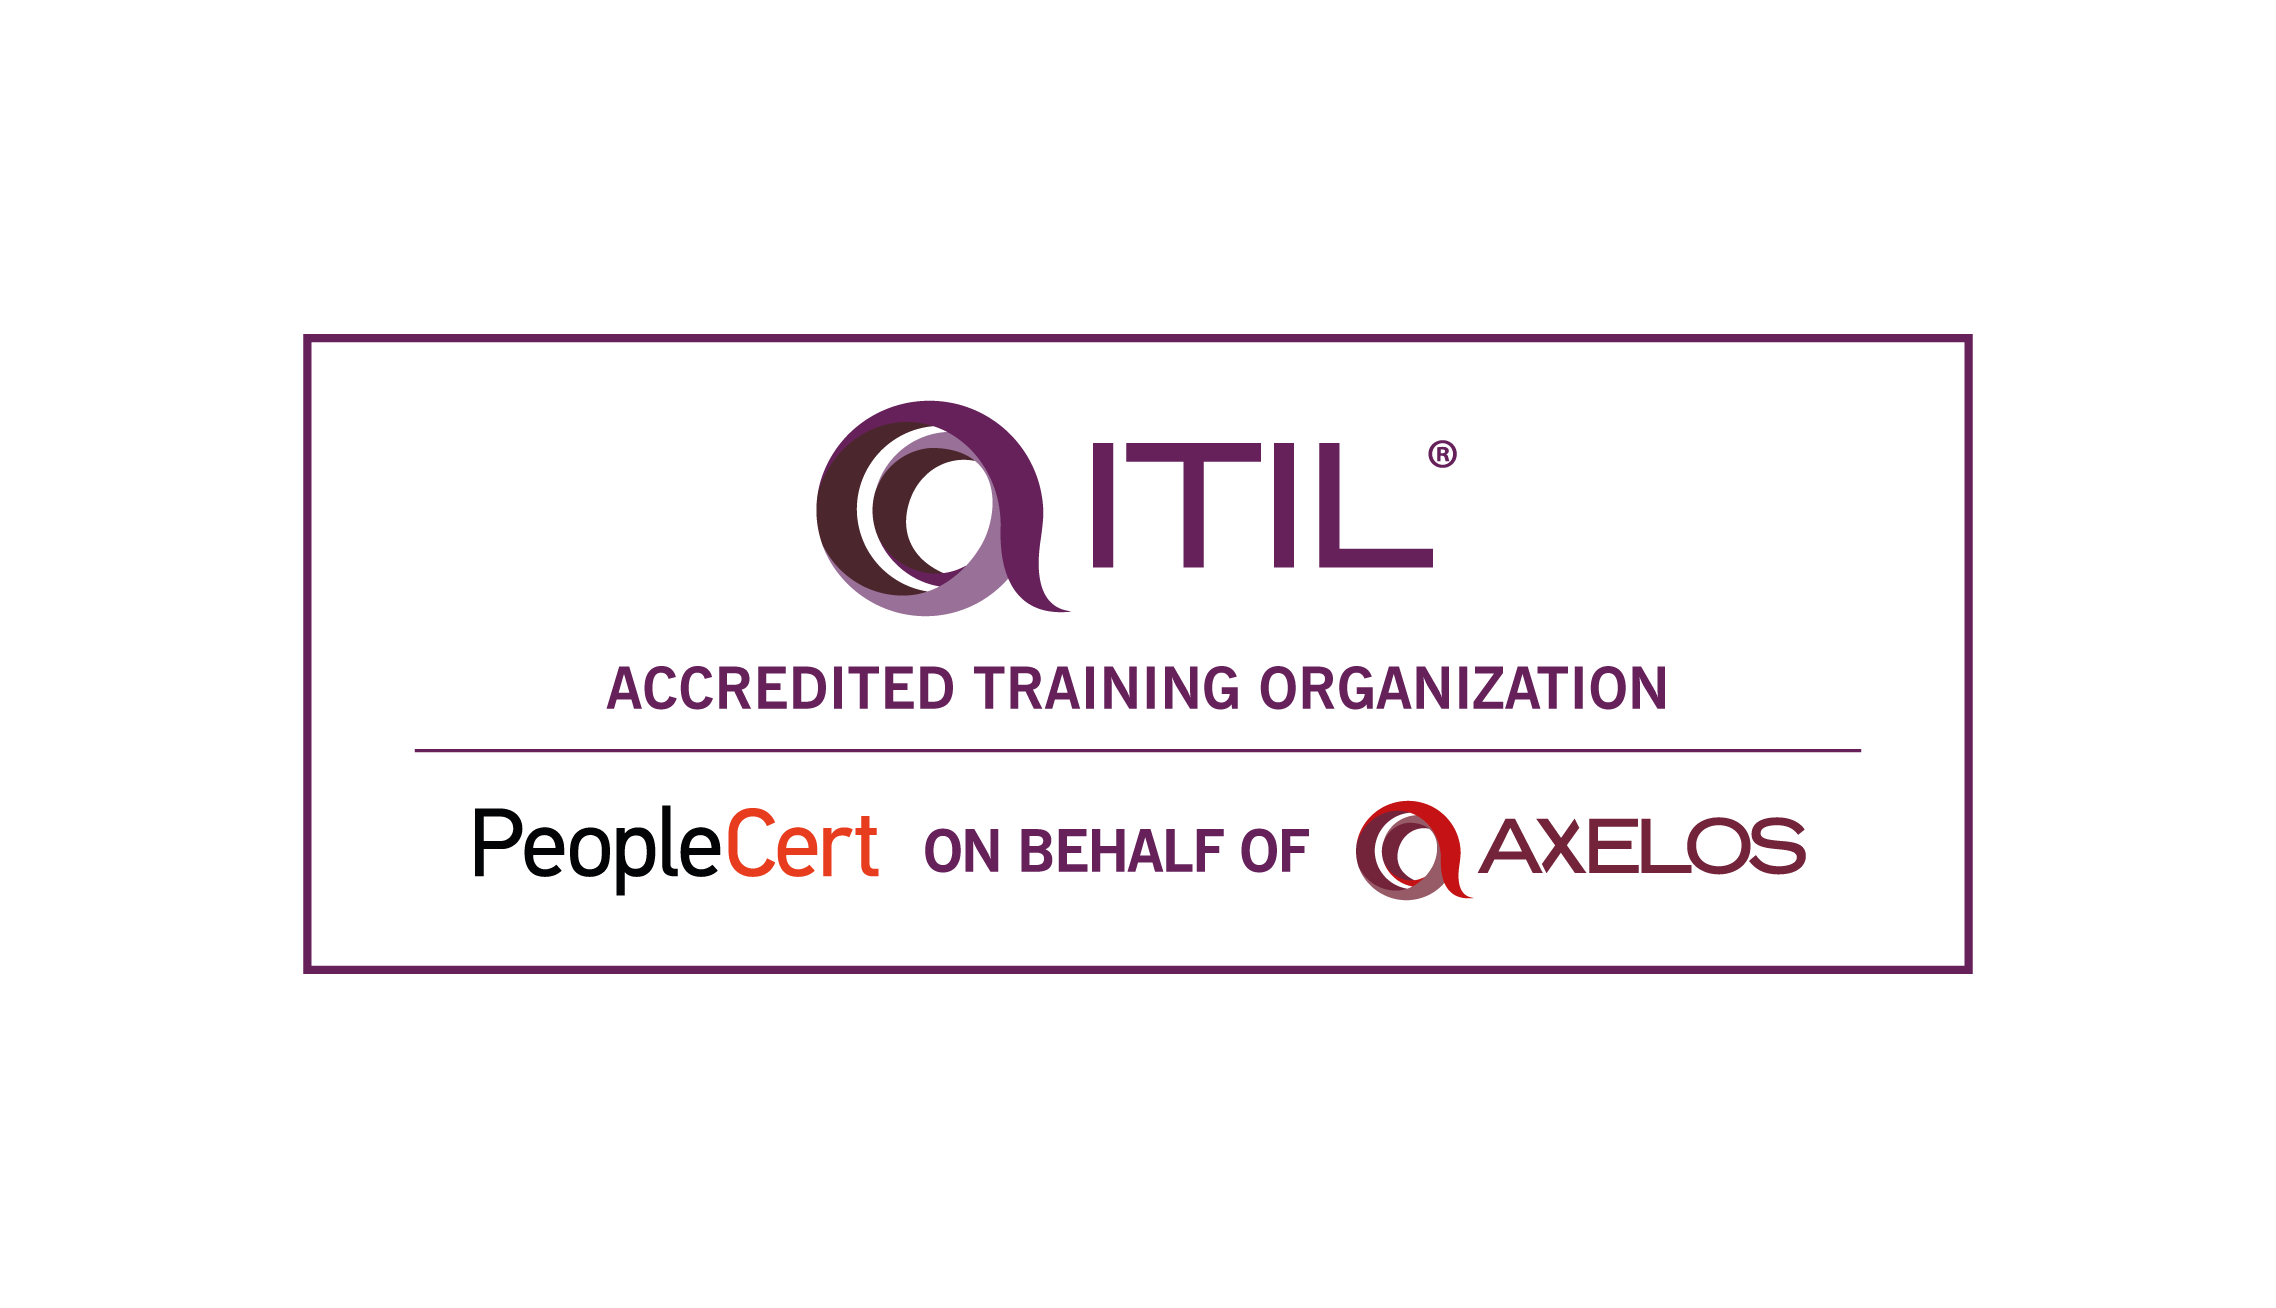 Passionit Group Accredited Certification Training Exams Home Page